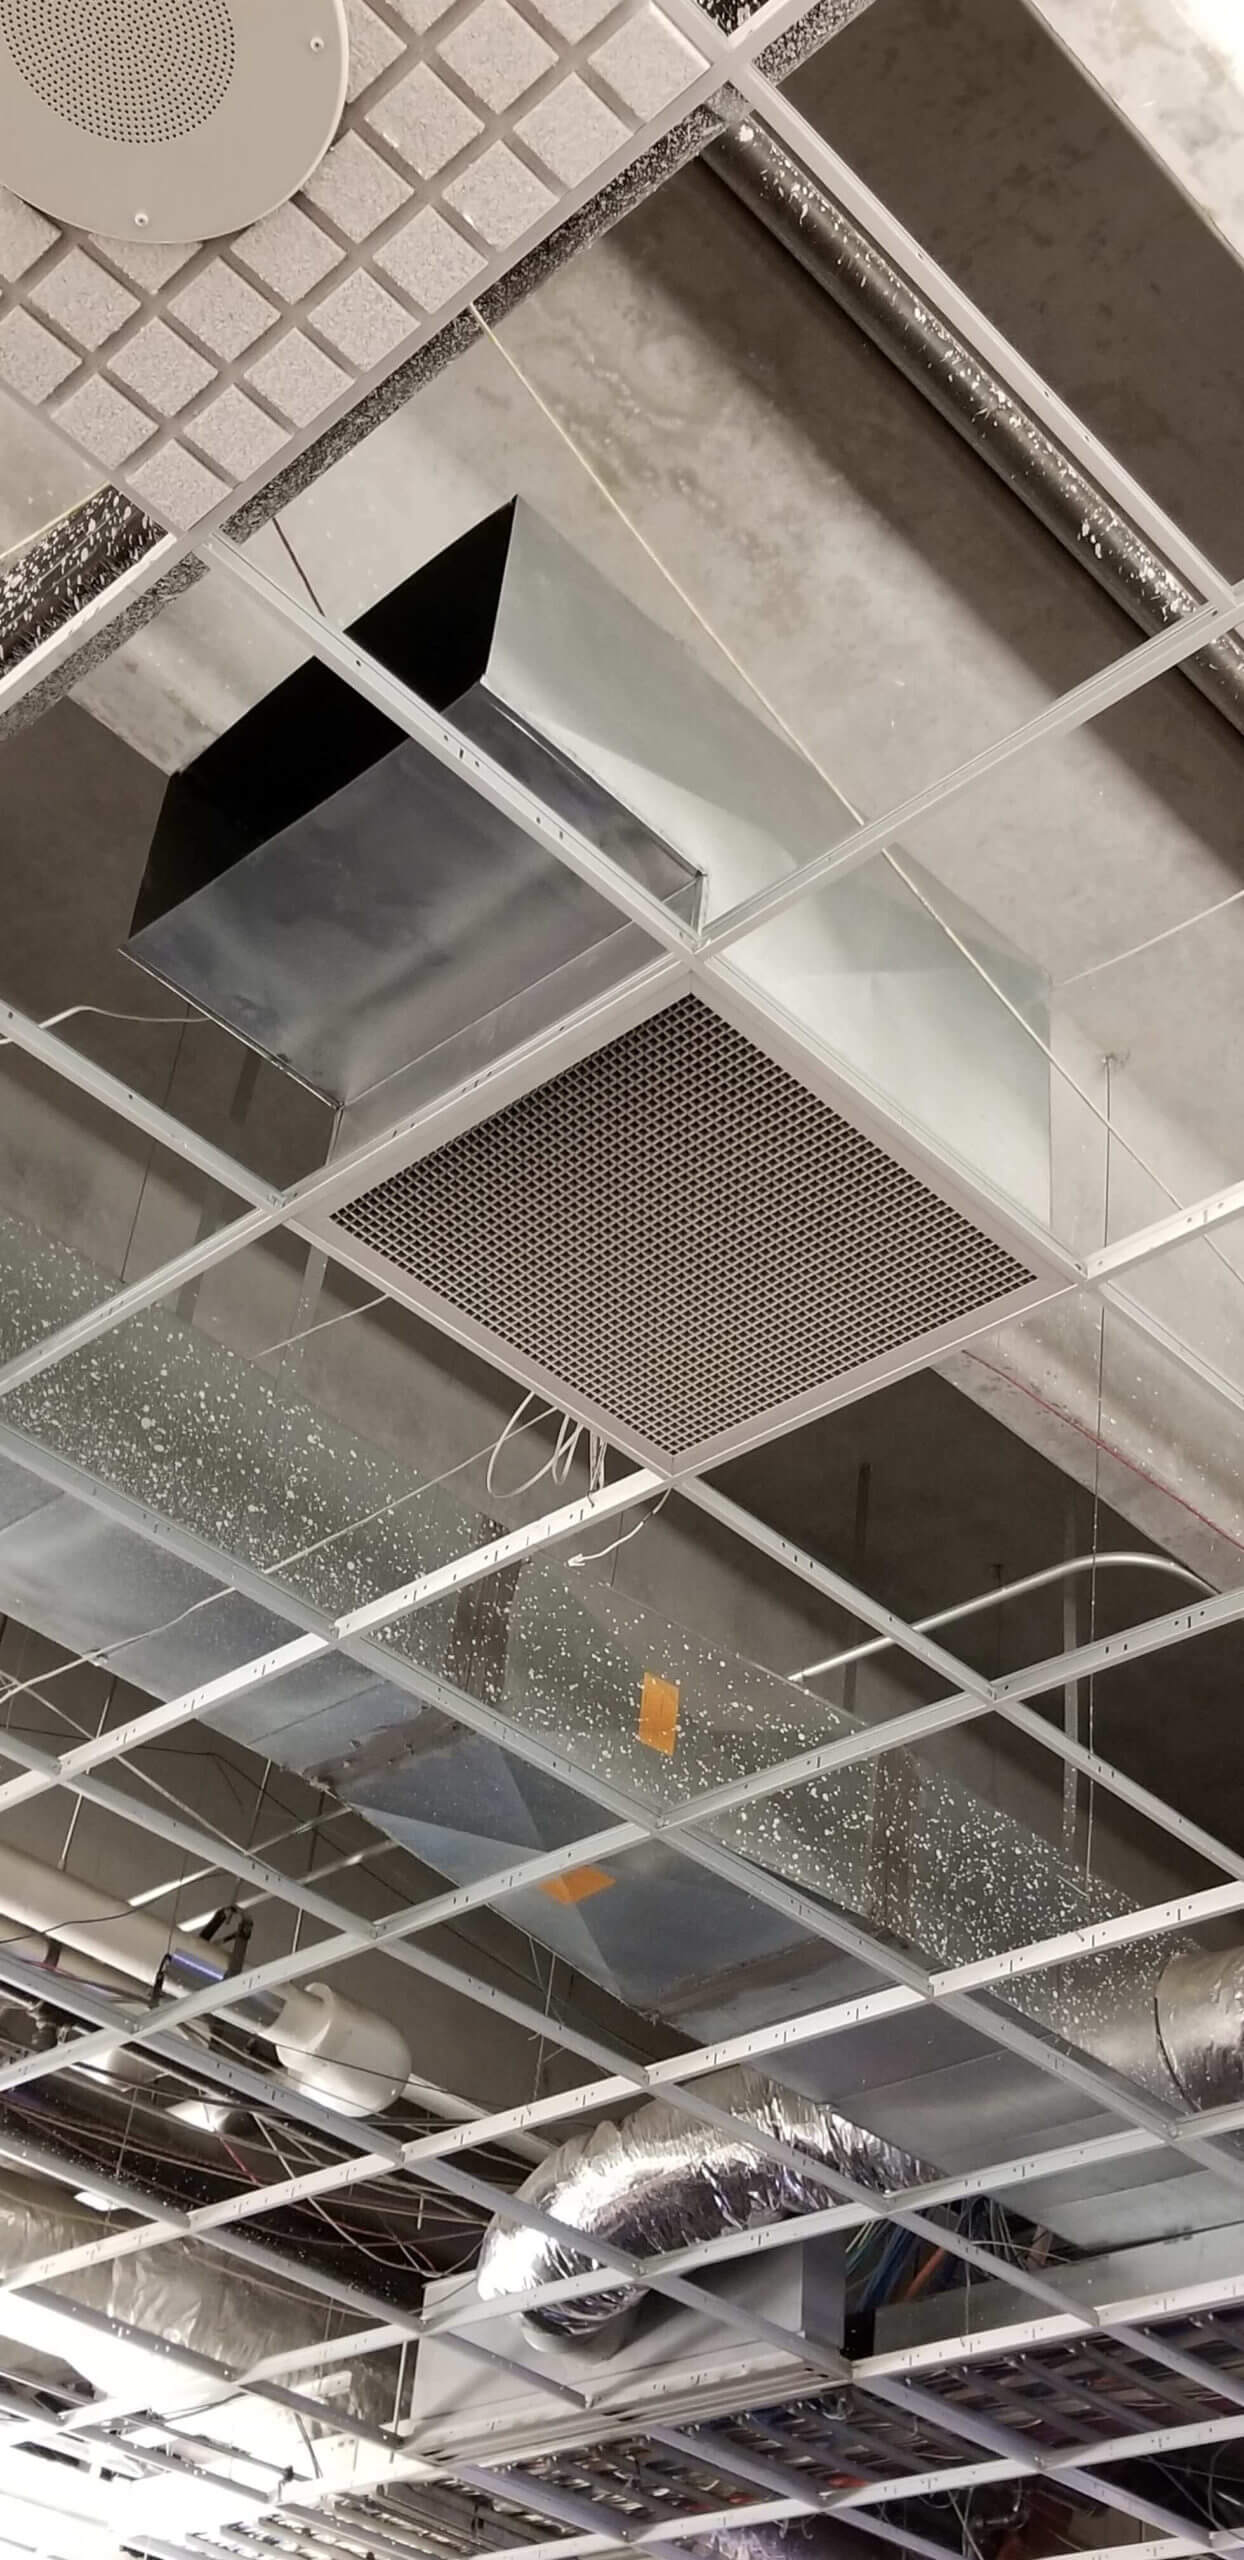 Commercial air ducts cleaned after experiencing a fire